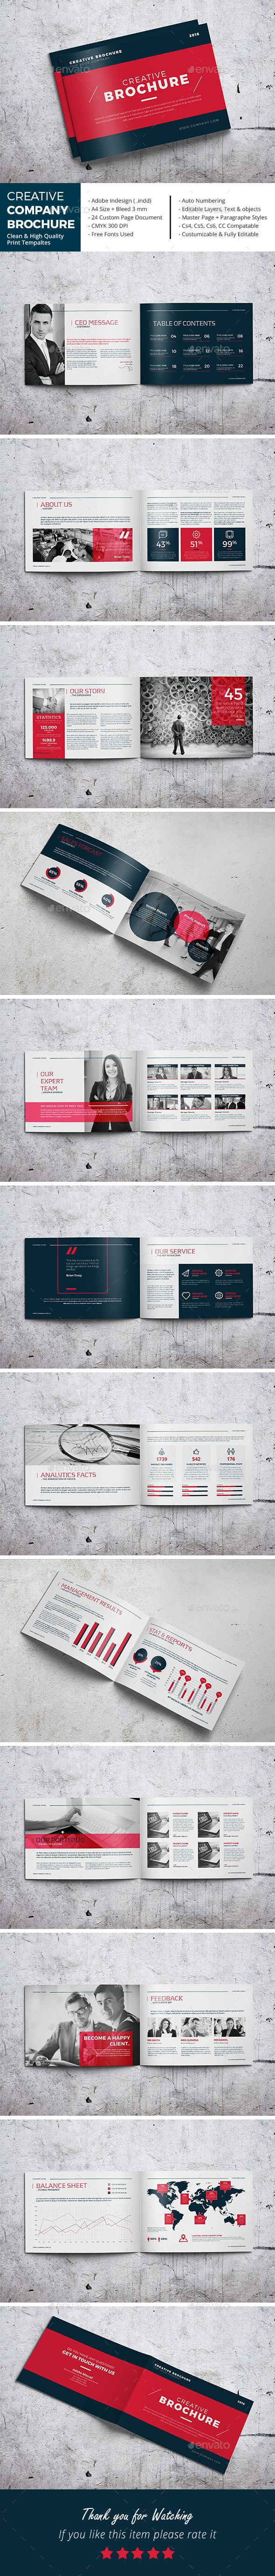 Creative Company Brochure Template InDesign INDD